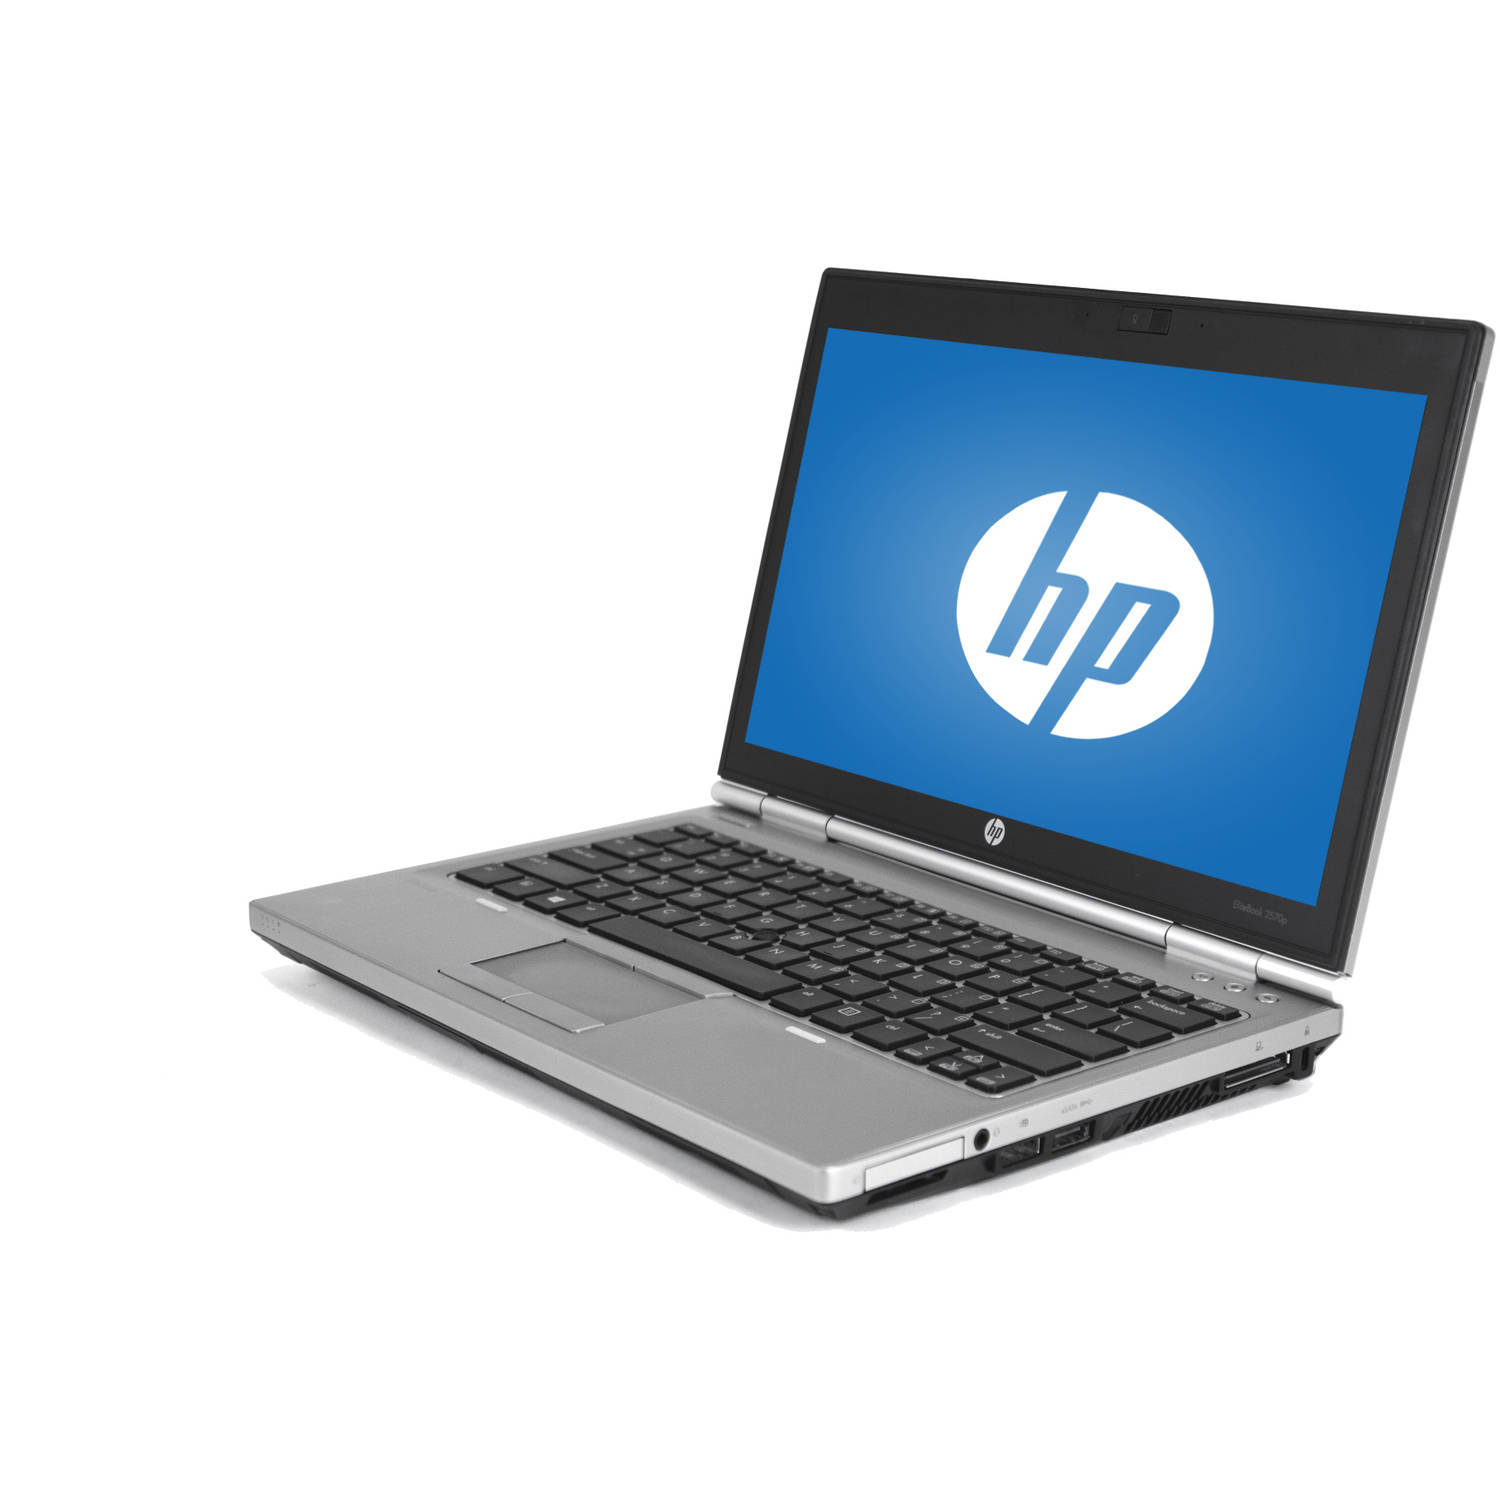 "Refurbished HP Silver 12.5"" EliteBook 2570P WA5-1121 Laptop PC with Intel Core i5-3210M Processor, 4GB Memory, 320GB Hard Drive and Windows 10 Home"